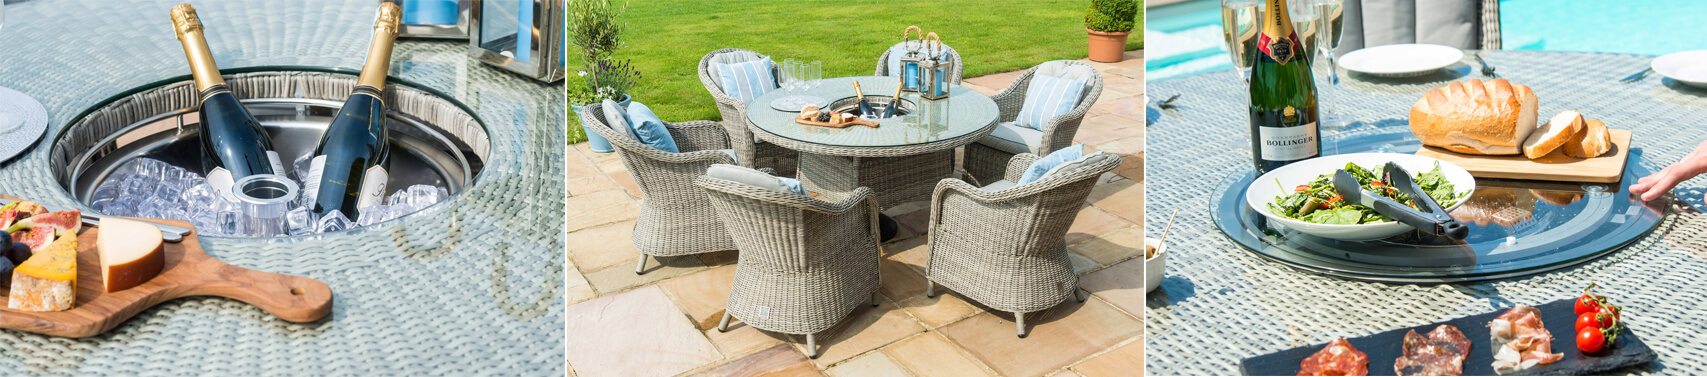 mbimages/m/a/maze_rattan_oxford_6_seat_round_ice_bucket_dining_set_with_heritage_chairs_1.jpg